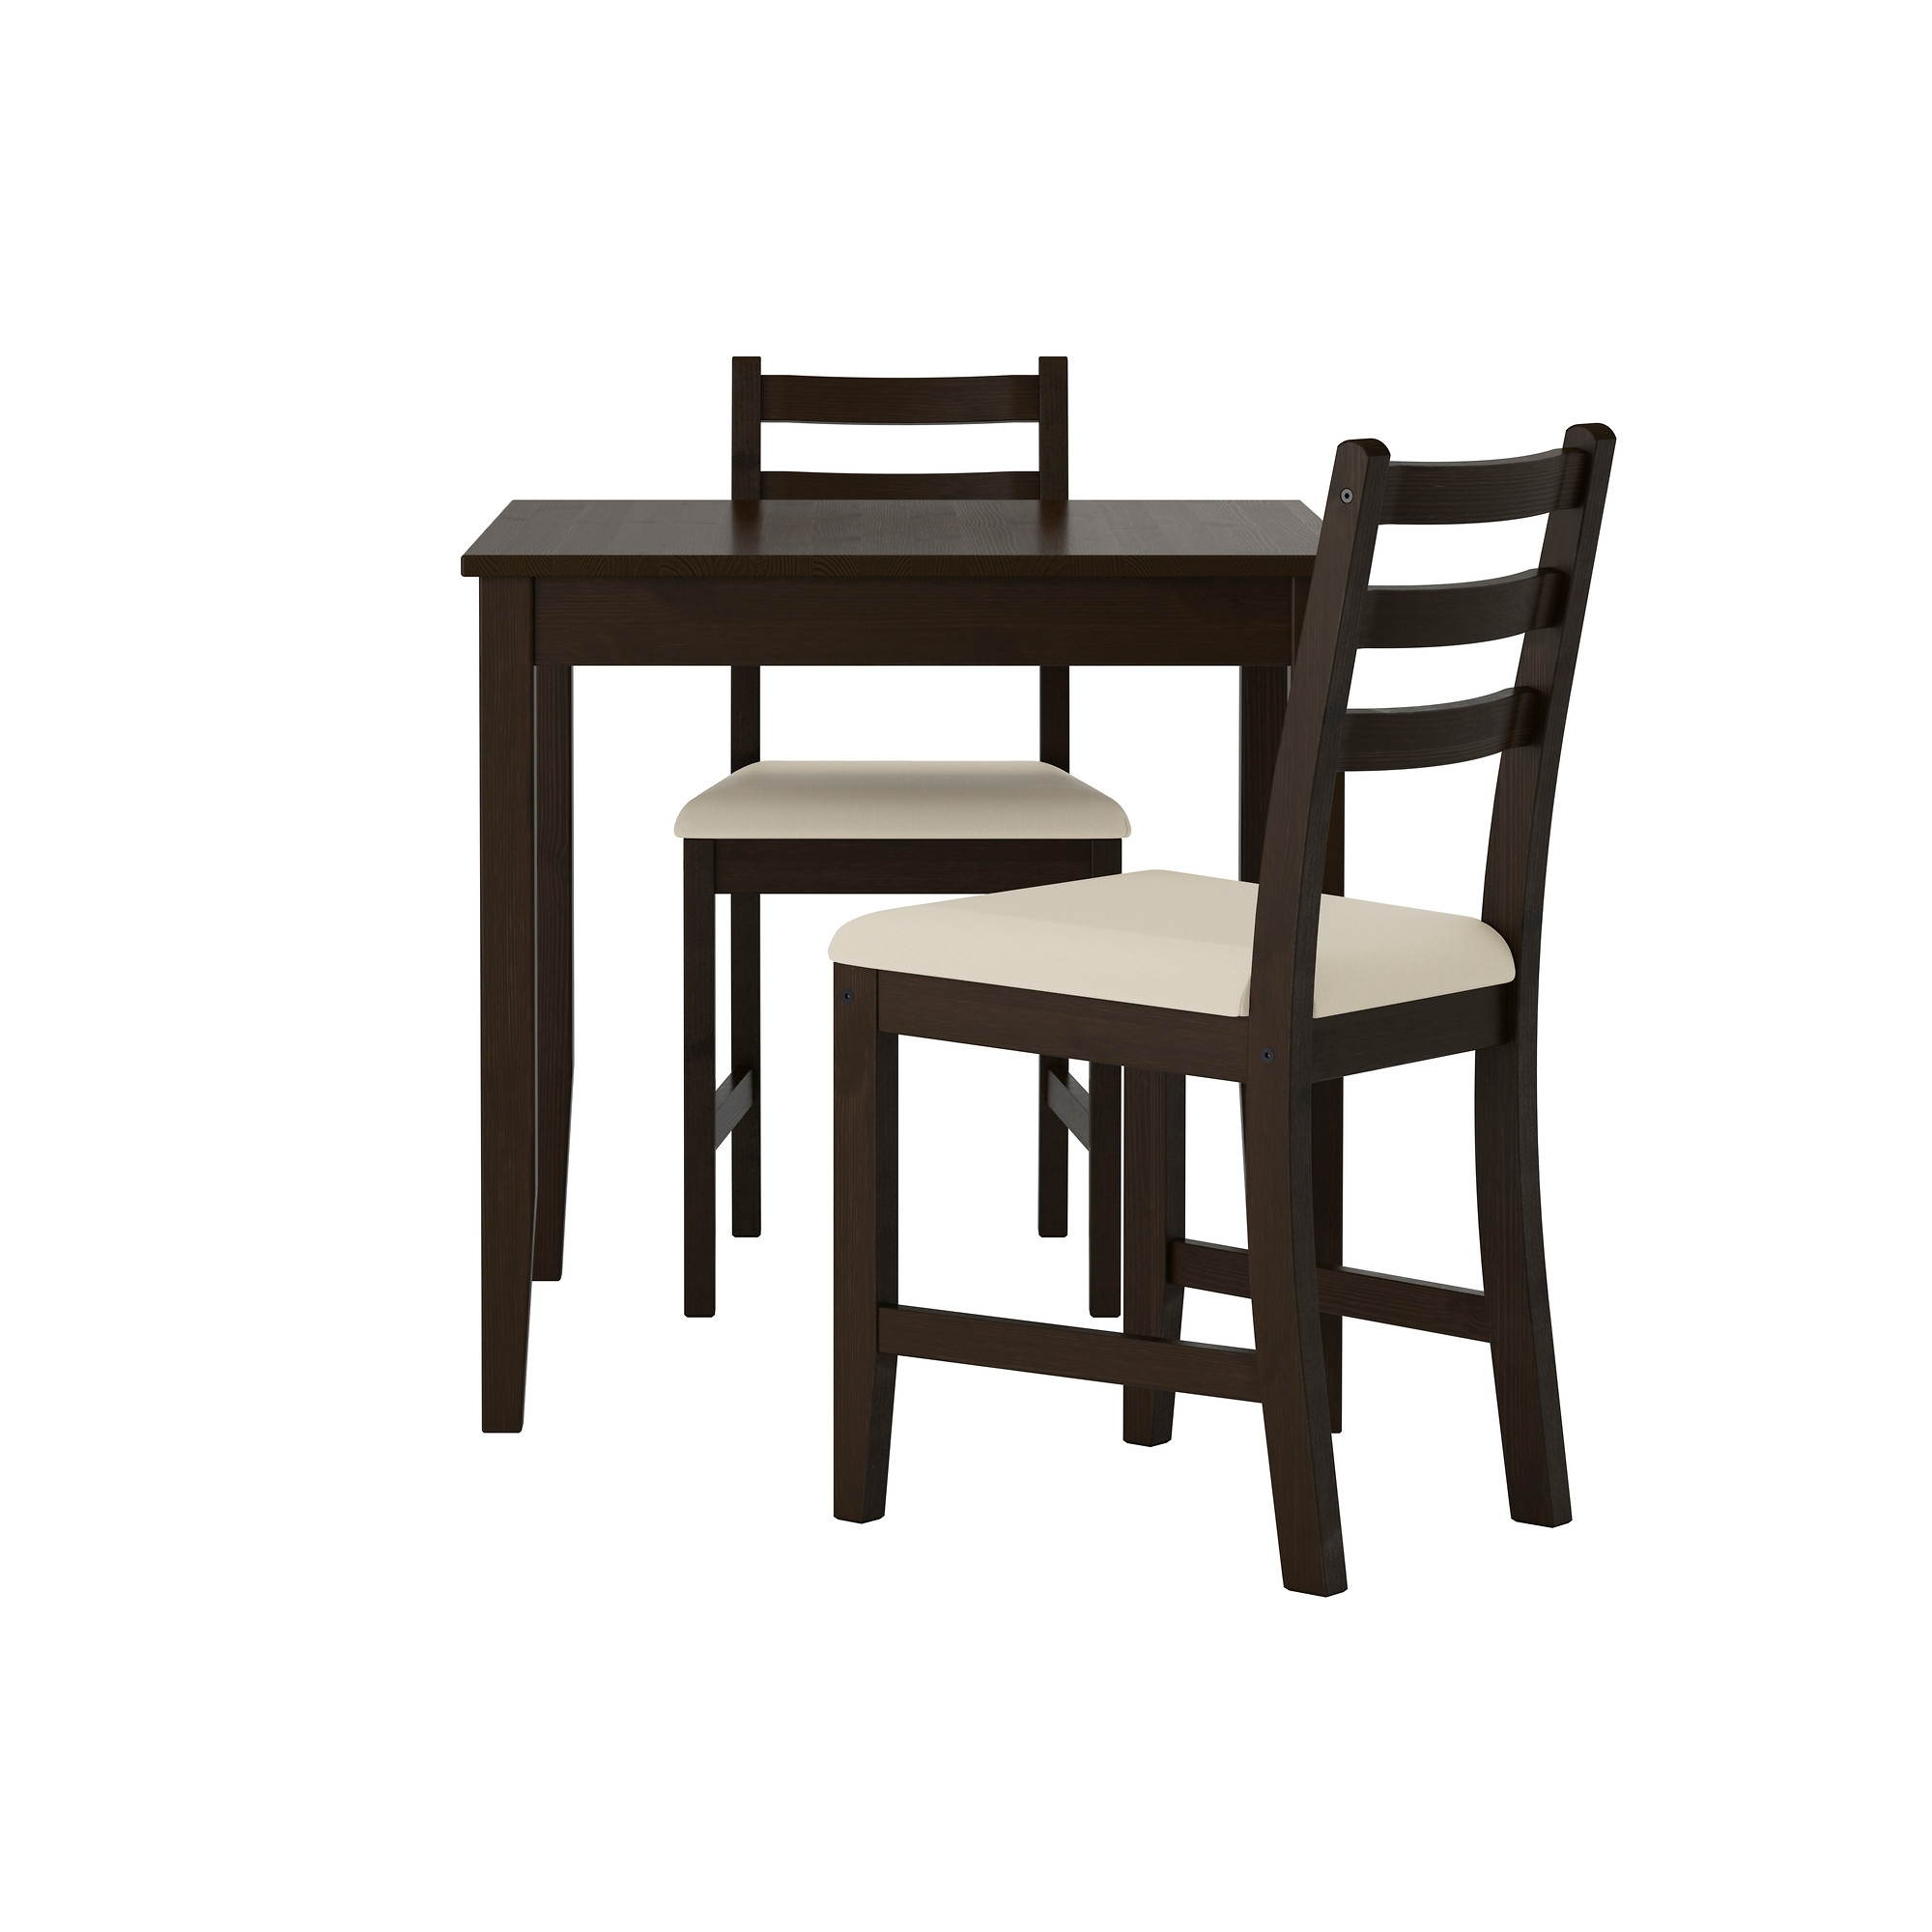 Small Dining Table Sets 2 Seater Dining Table Chairs, Ikea Table Inside Popular Small Dining Tables For  (View 18 of 25)